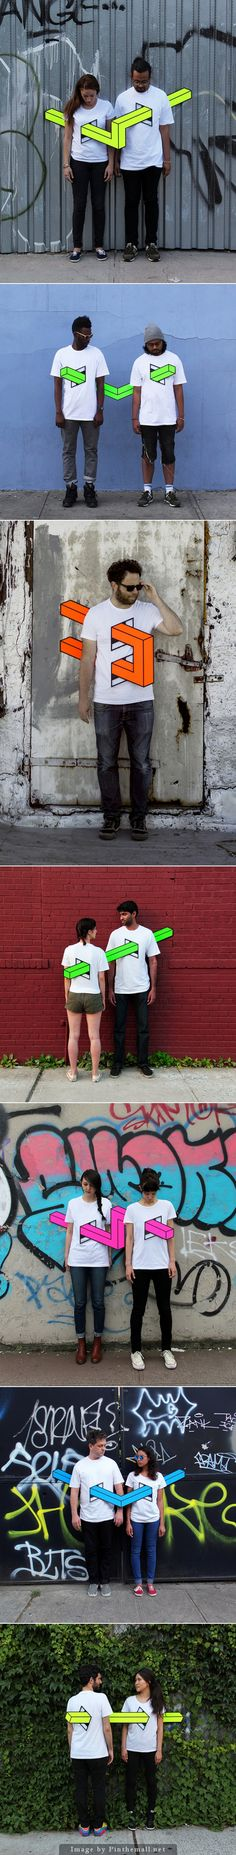 People Skewered with Geometric Shapes by Aakash Nihalani - created via http://pinthemall.net